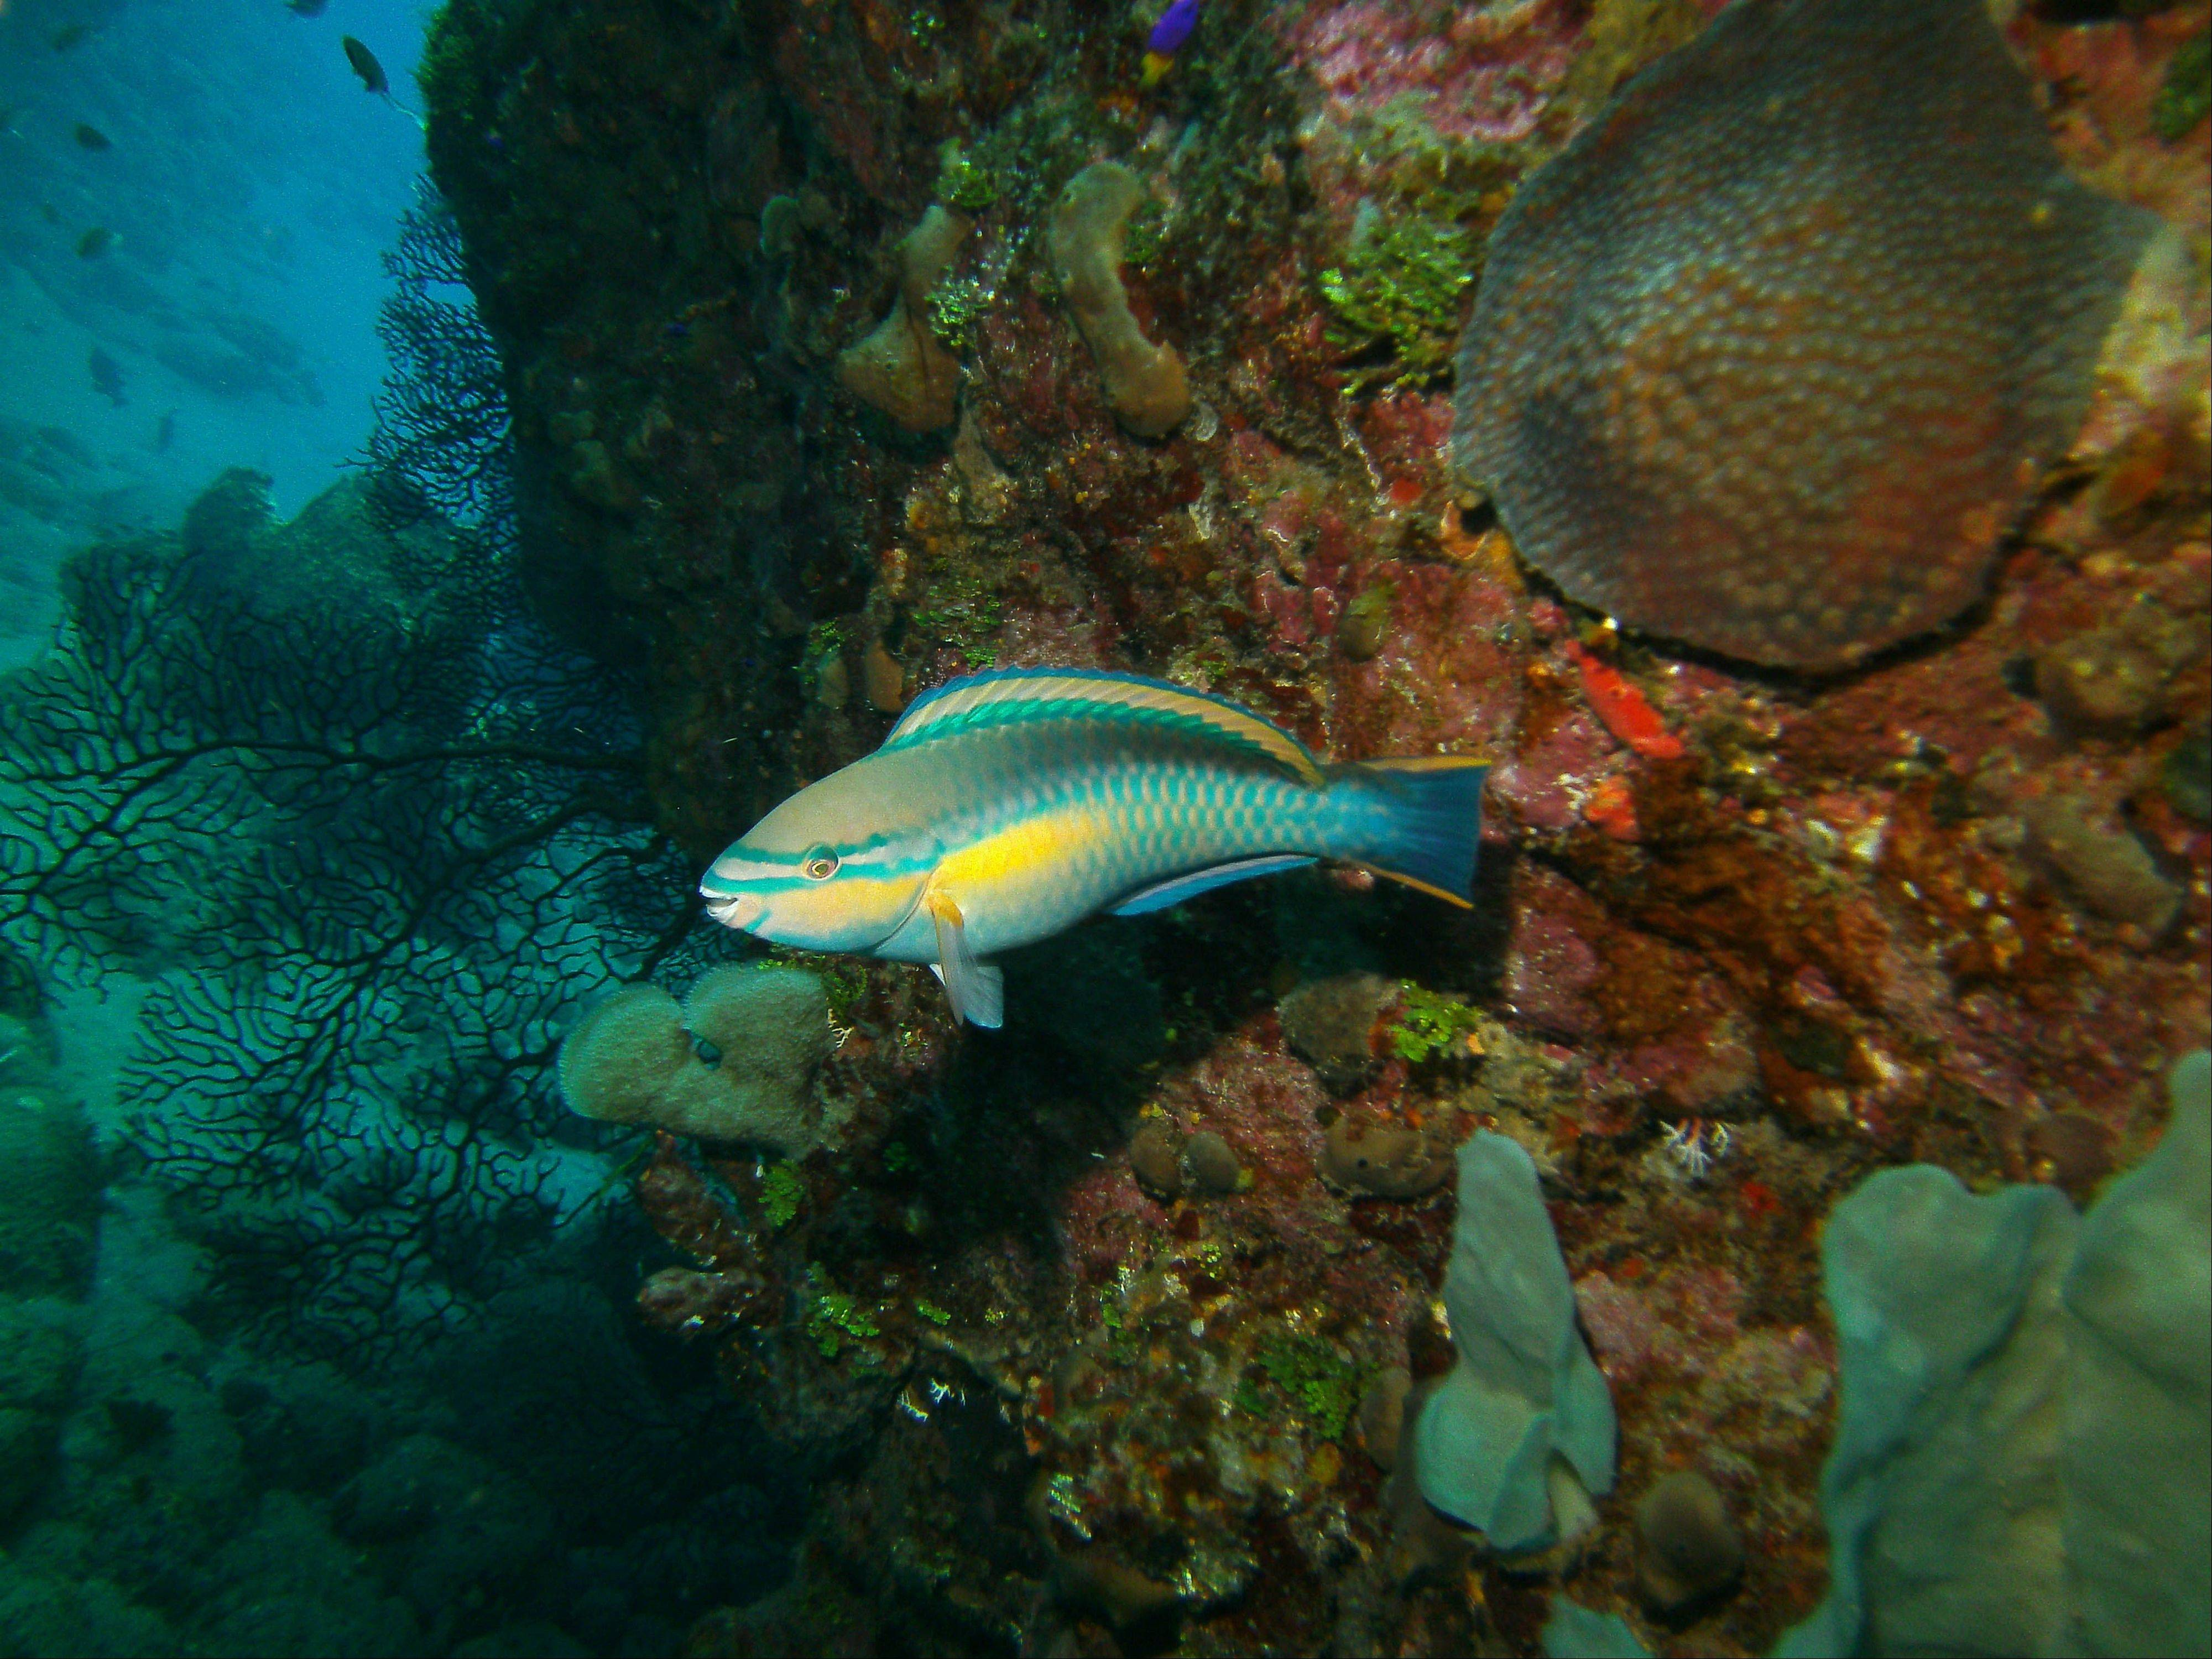 A princess parrotfish is seen in the Saba Marine Park in Saba. About 150 species of fish have been identified in the waters of Saba.